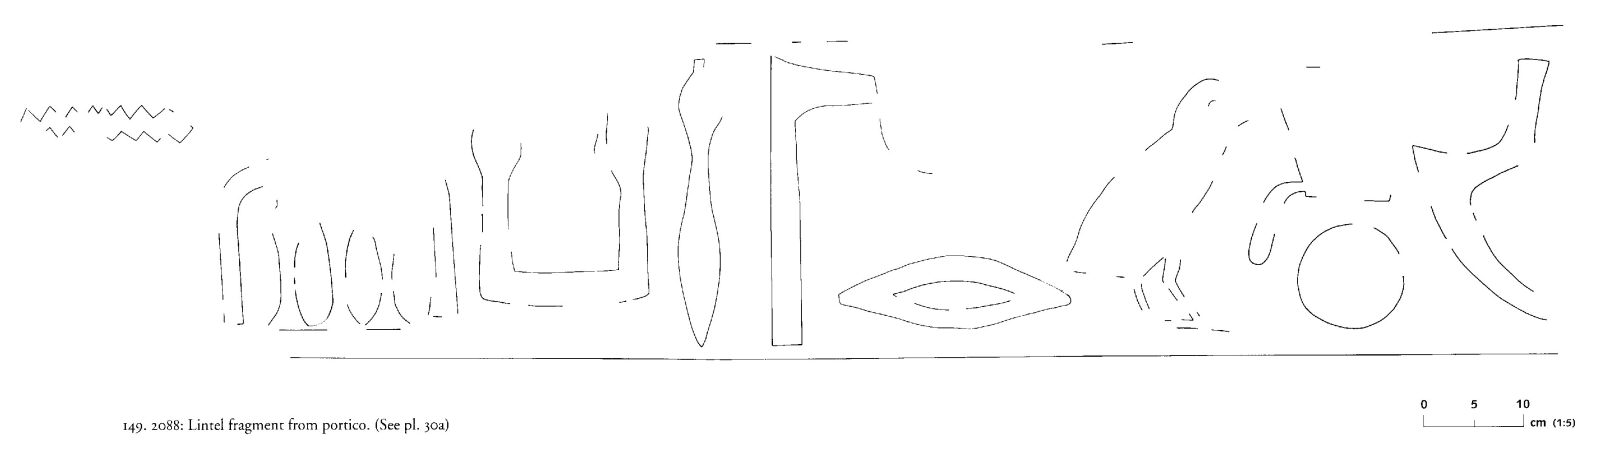 Drawings: G 2088: relief fragments from portico, lintel